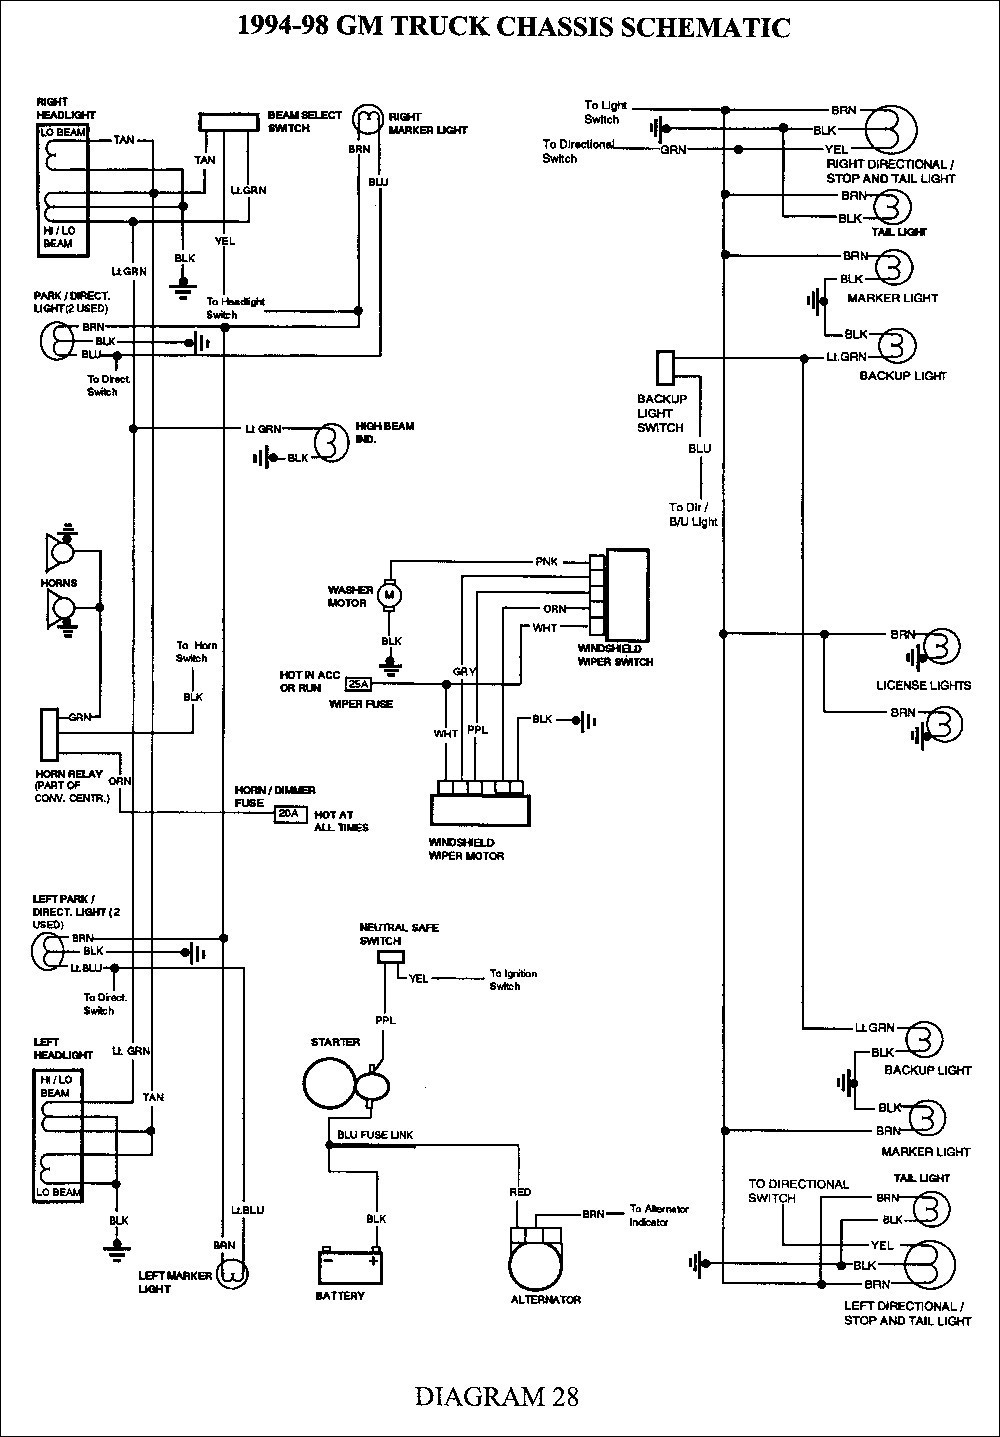 chevy s10 tail light wiring diagram as well 1999 2001 chevy truck tail light wiring diagram wiring diagrams blog  2001 chevy truck tail light wiring